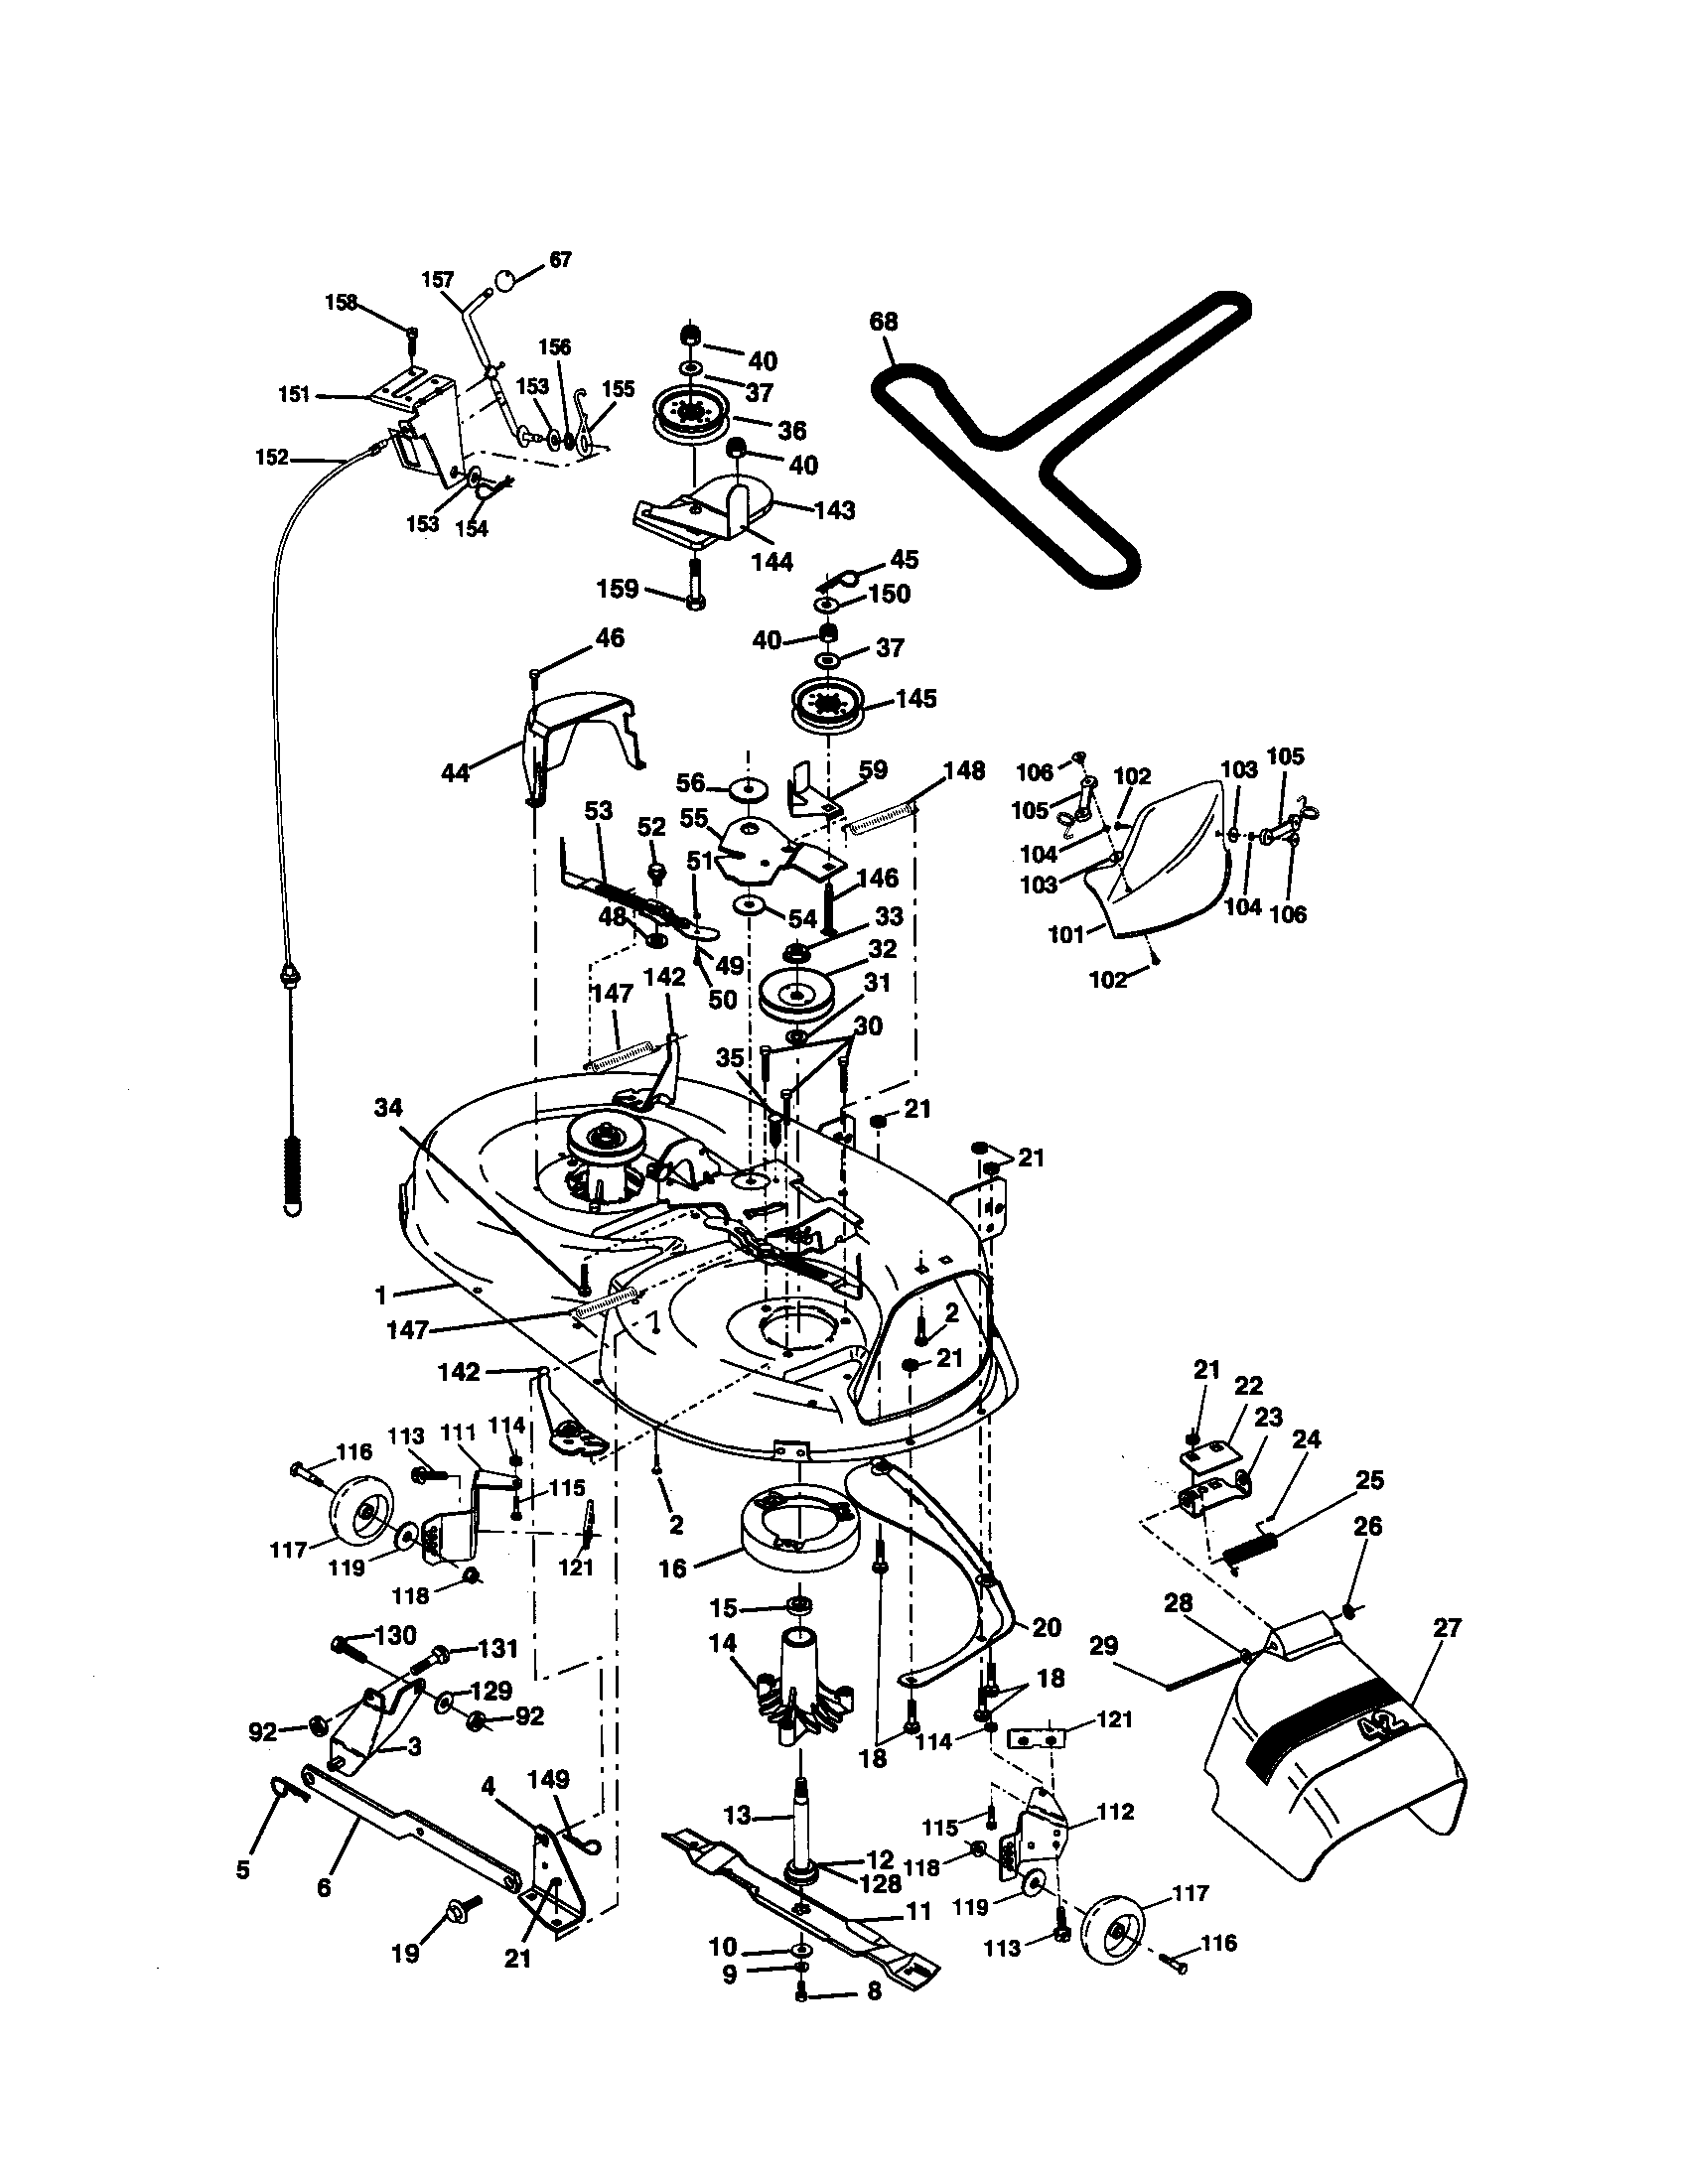 917270760 Craftsman Wiring Diagram Model : 40 Wiring